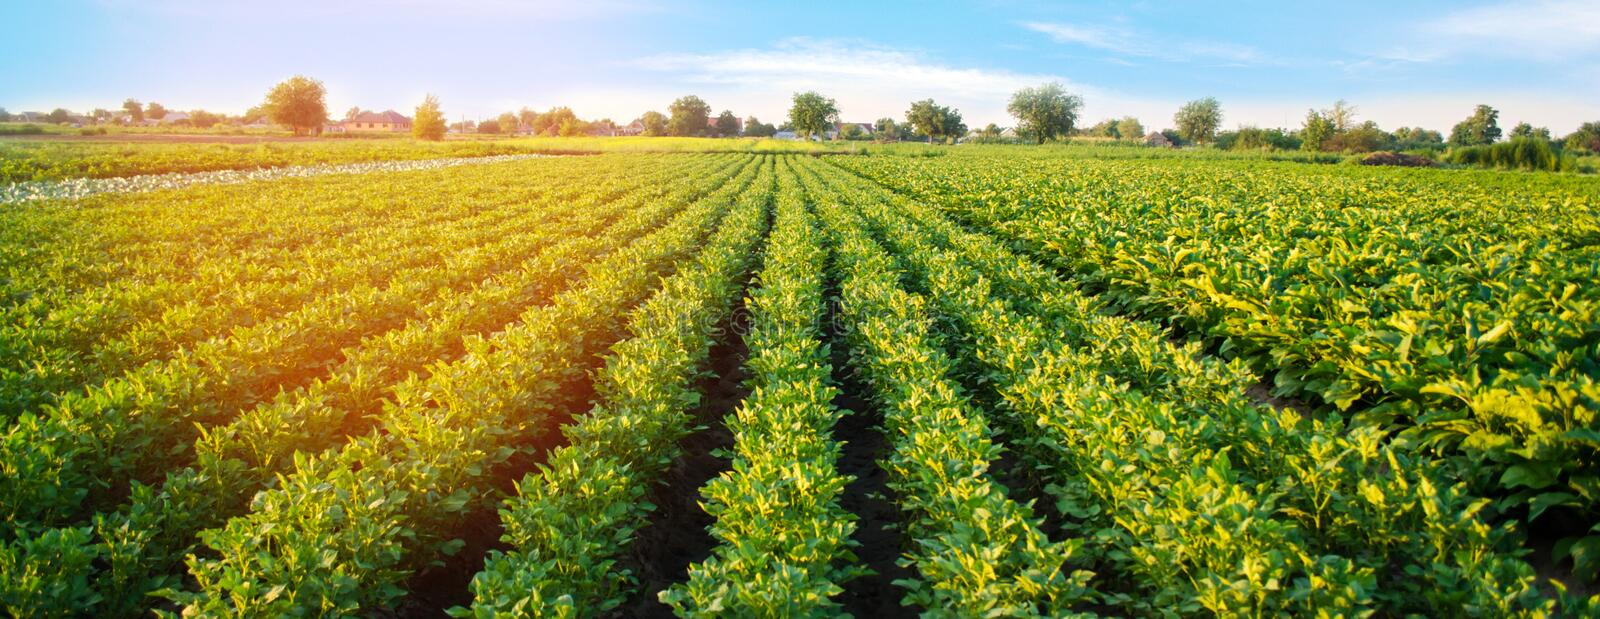 Potato plantations grow in the field. vegetable rows. farming, agriculture. Landscape with agricultural land. crops. Banner.  stock image